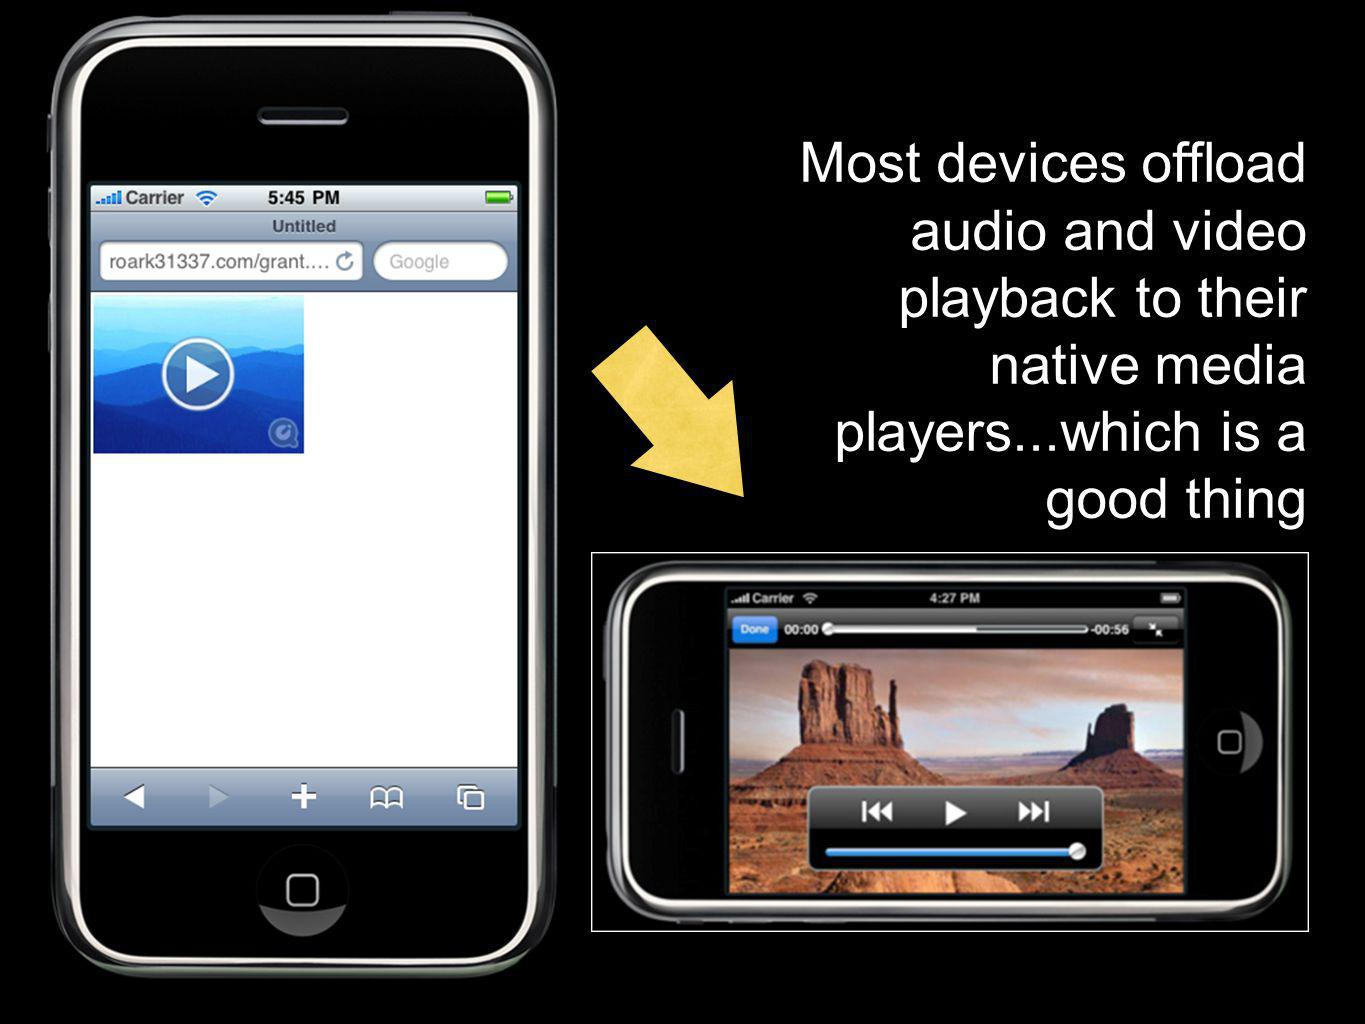 Most devices offload audio and video playback to their native media players...which is a good thing